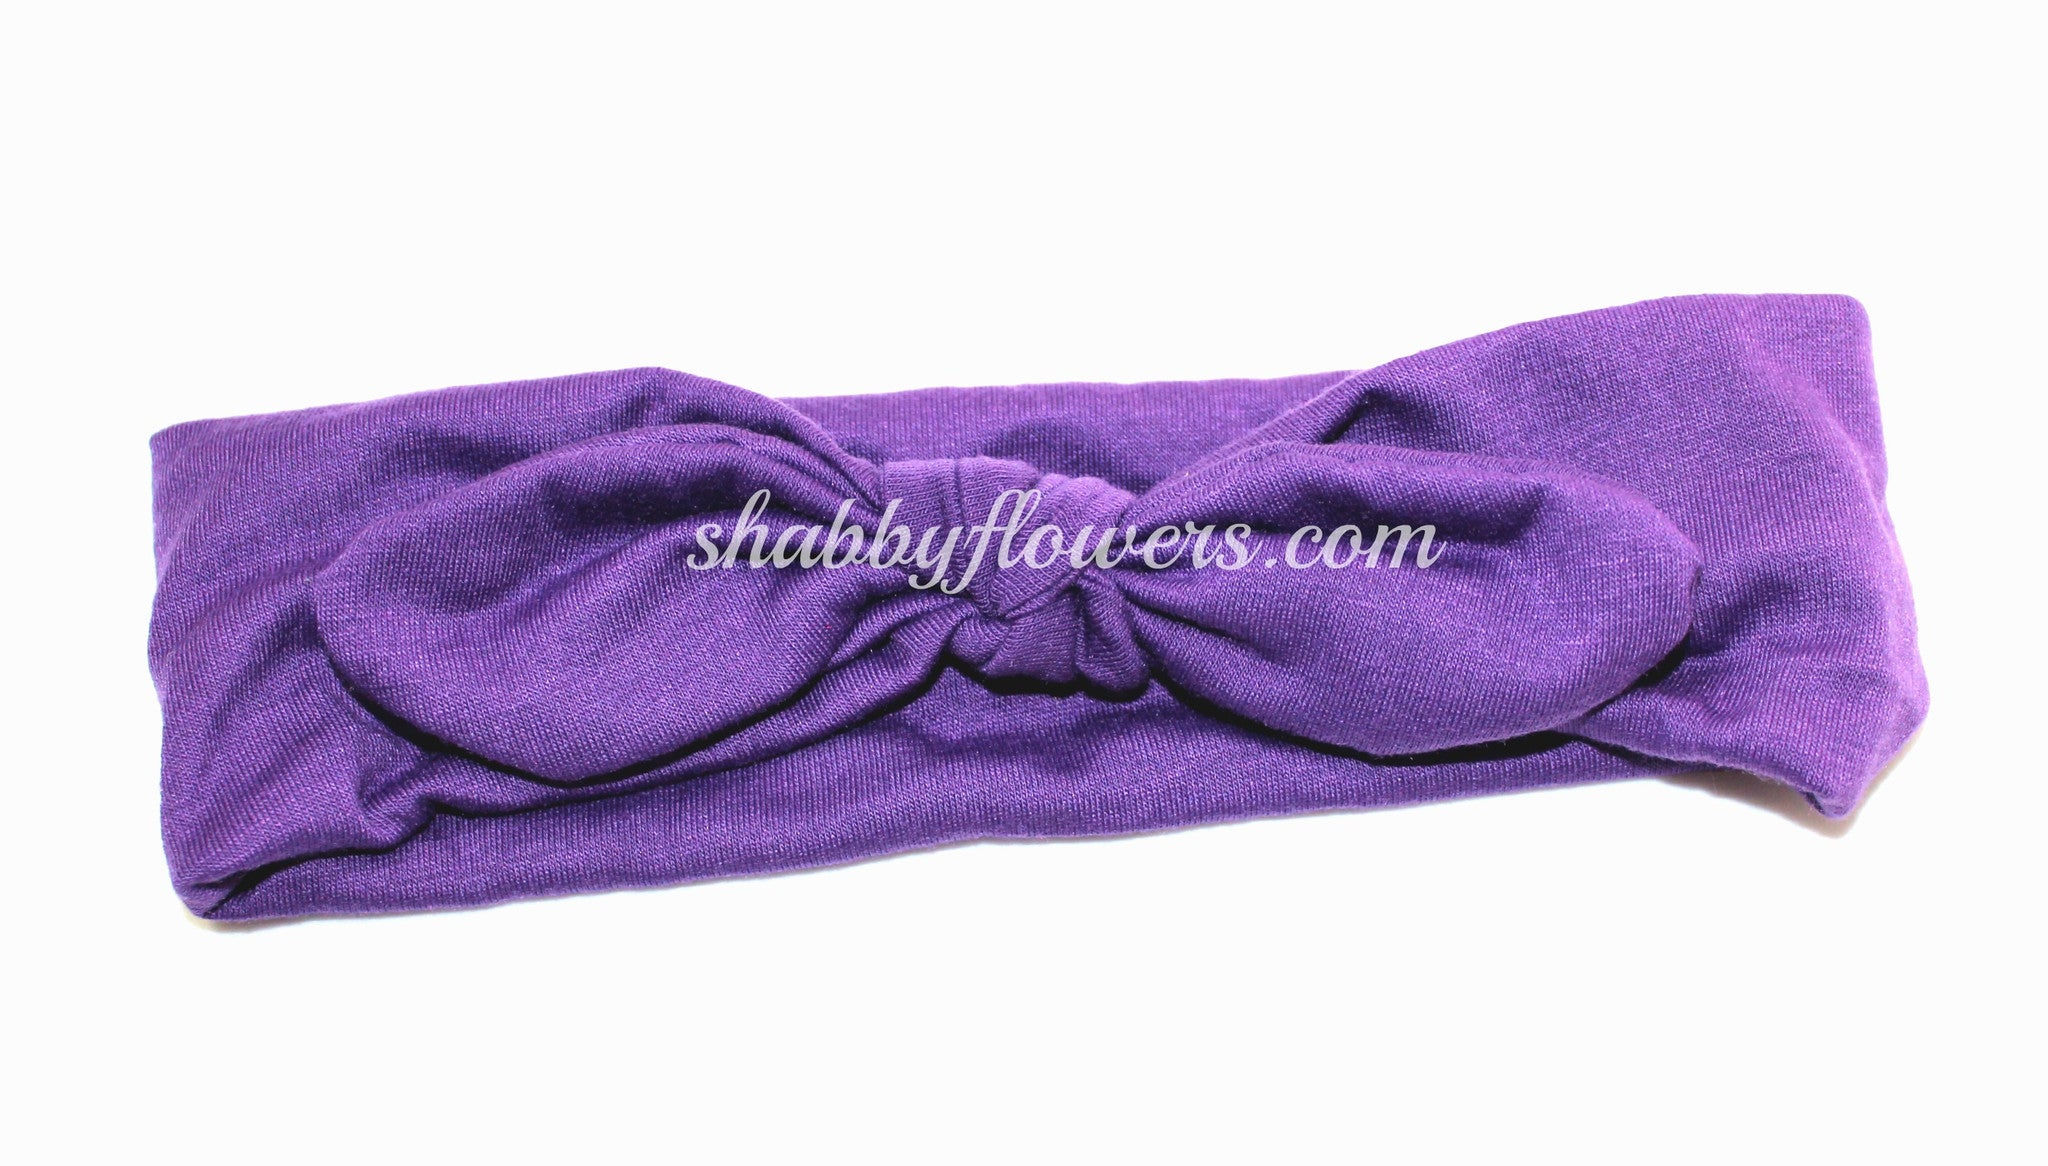 Knot Headband in Purple- Small - shabbyflowers.com